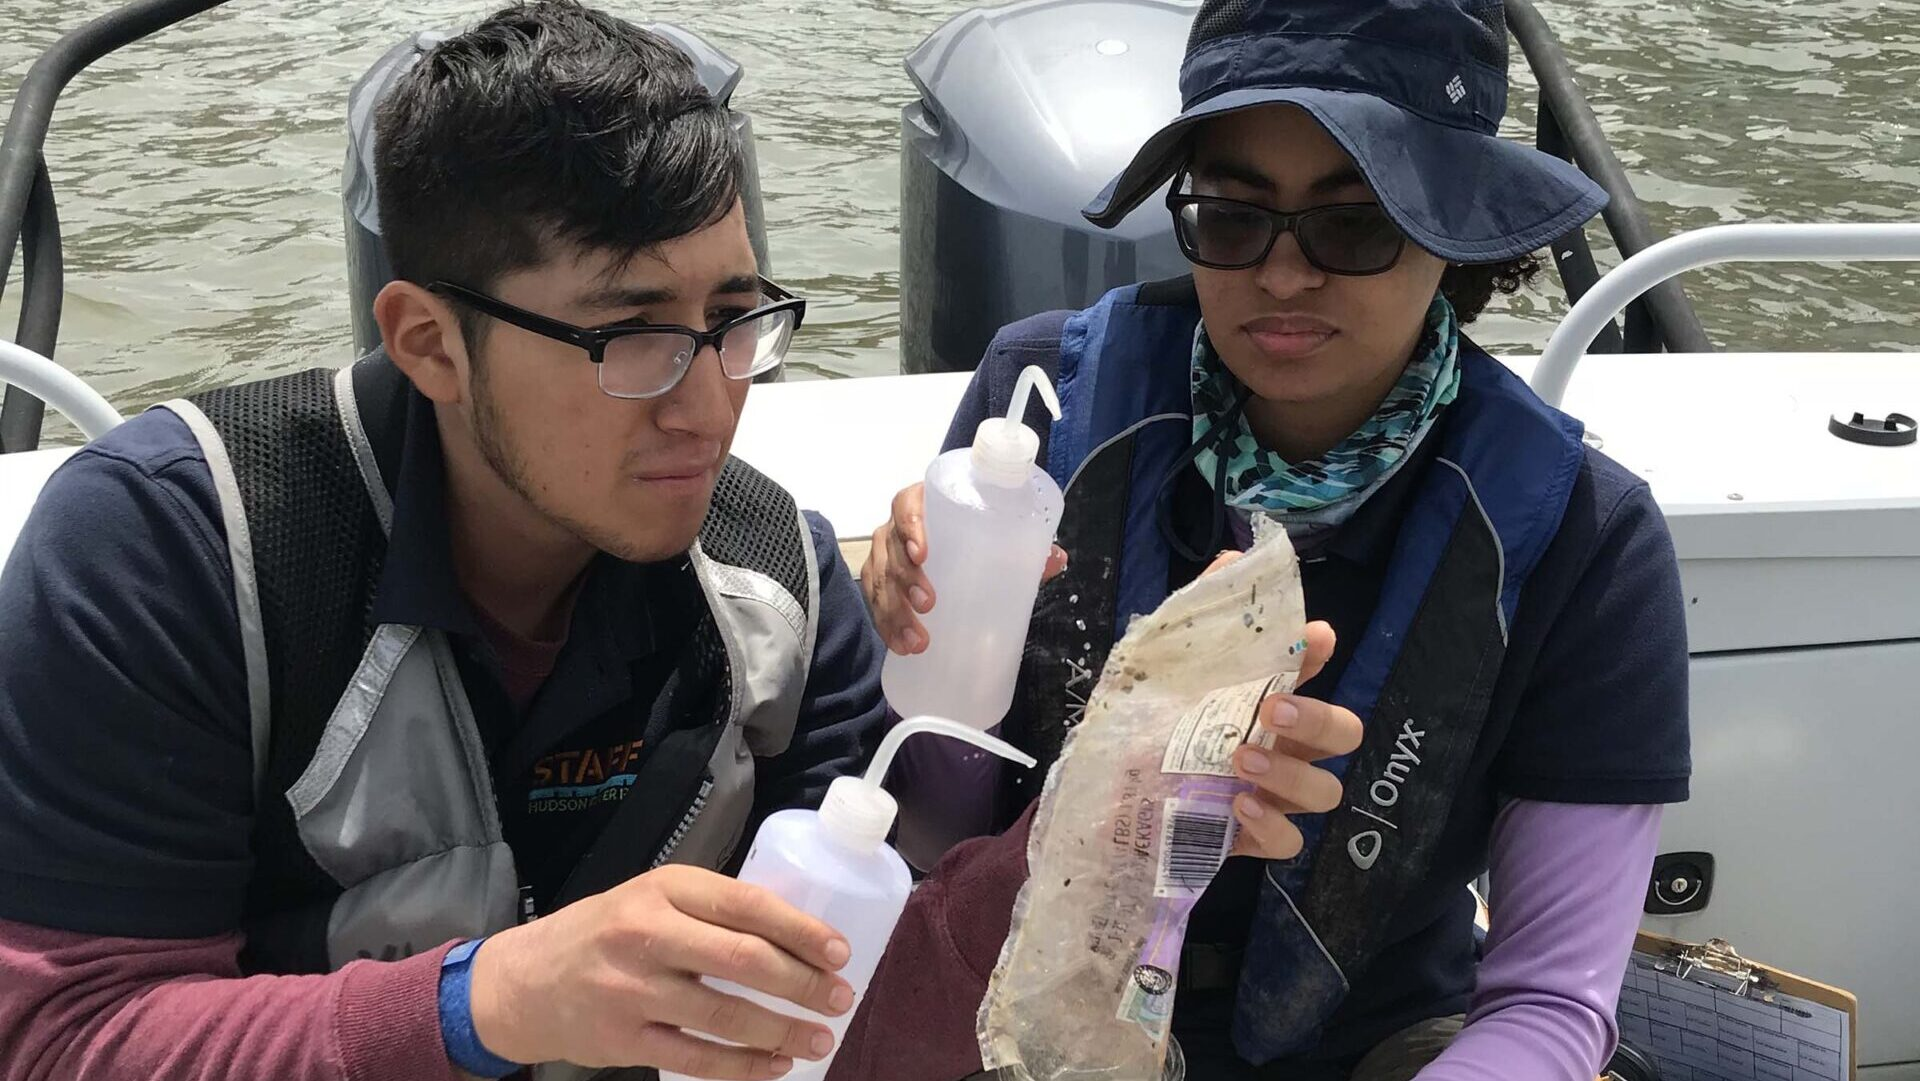 After pulling samples from the water, two scientists make observations